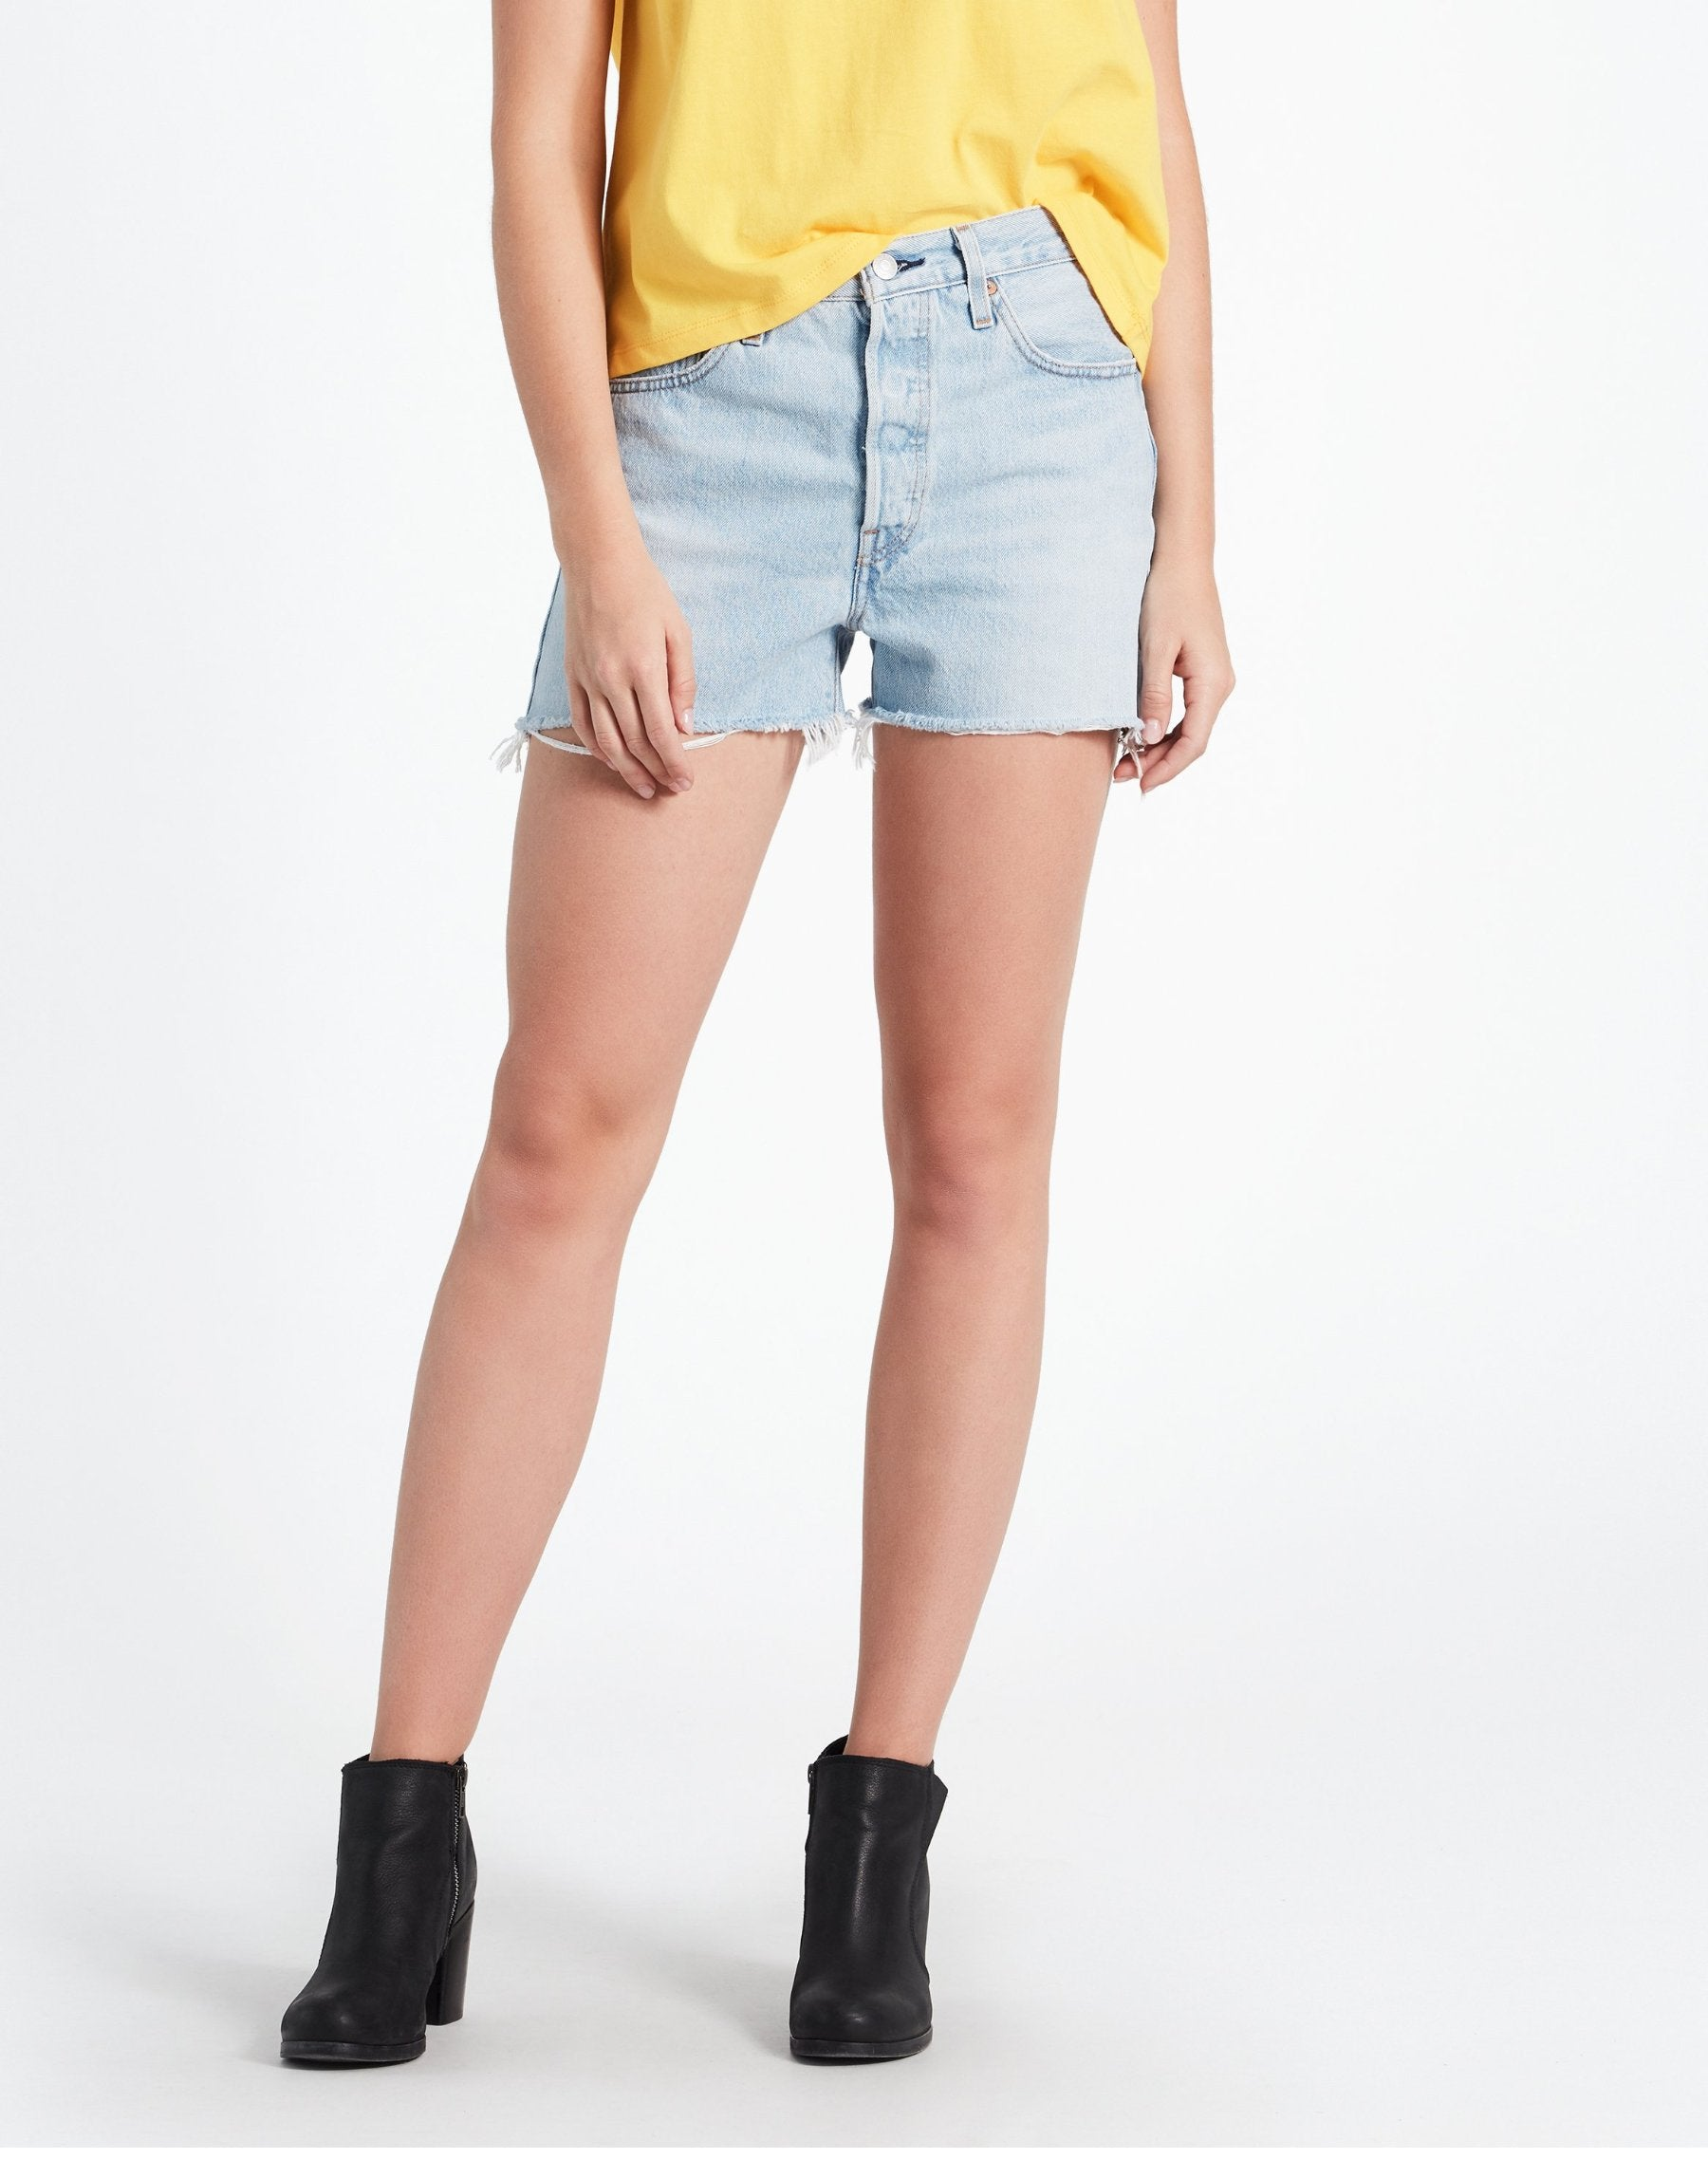 Photo of the the Weak in the Knees light denim shorts by Levi.